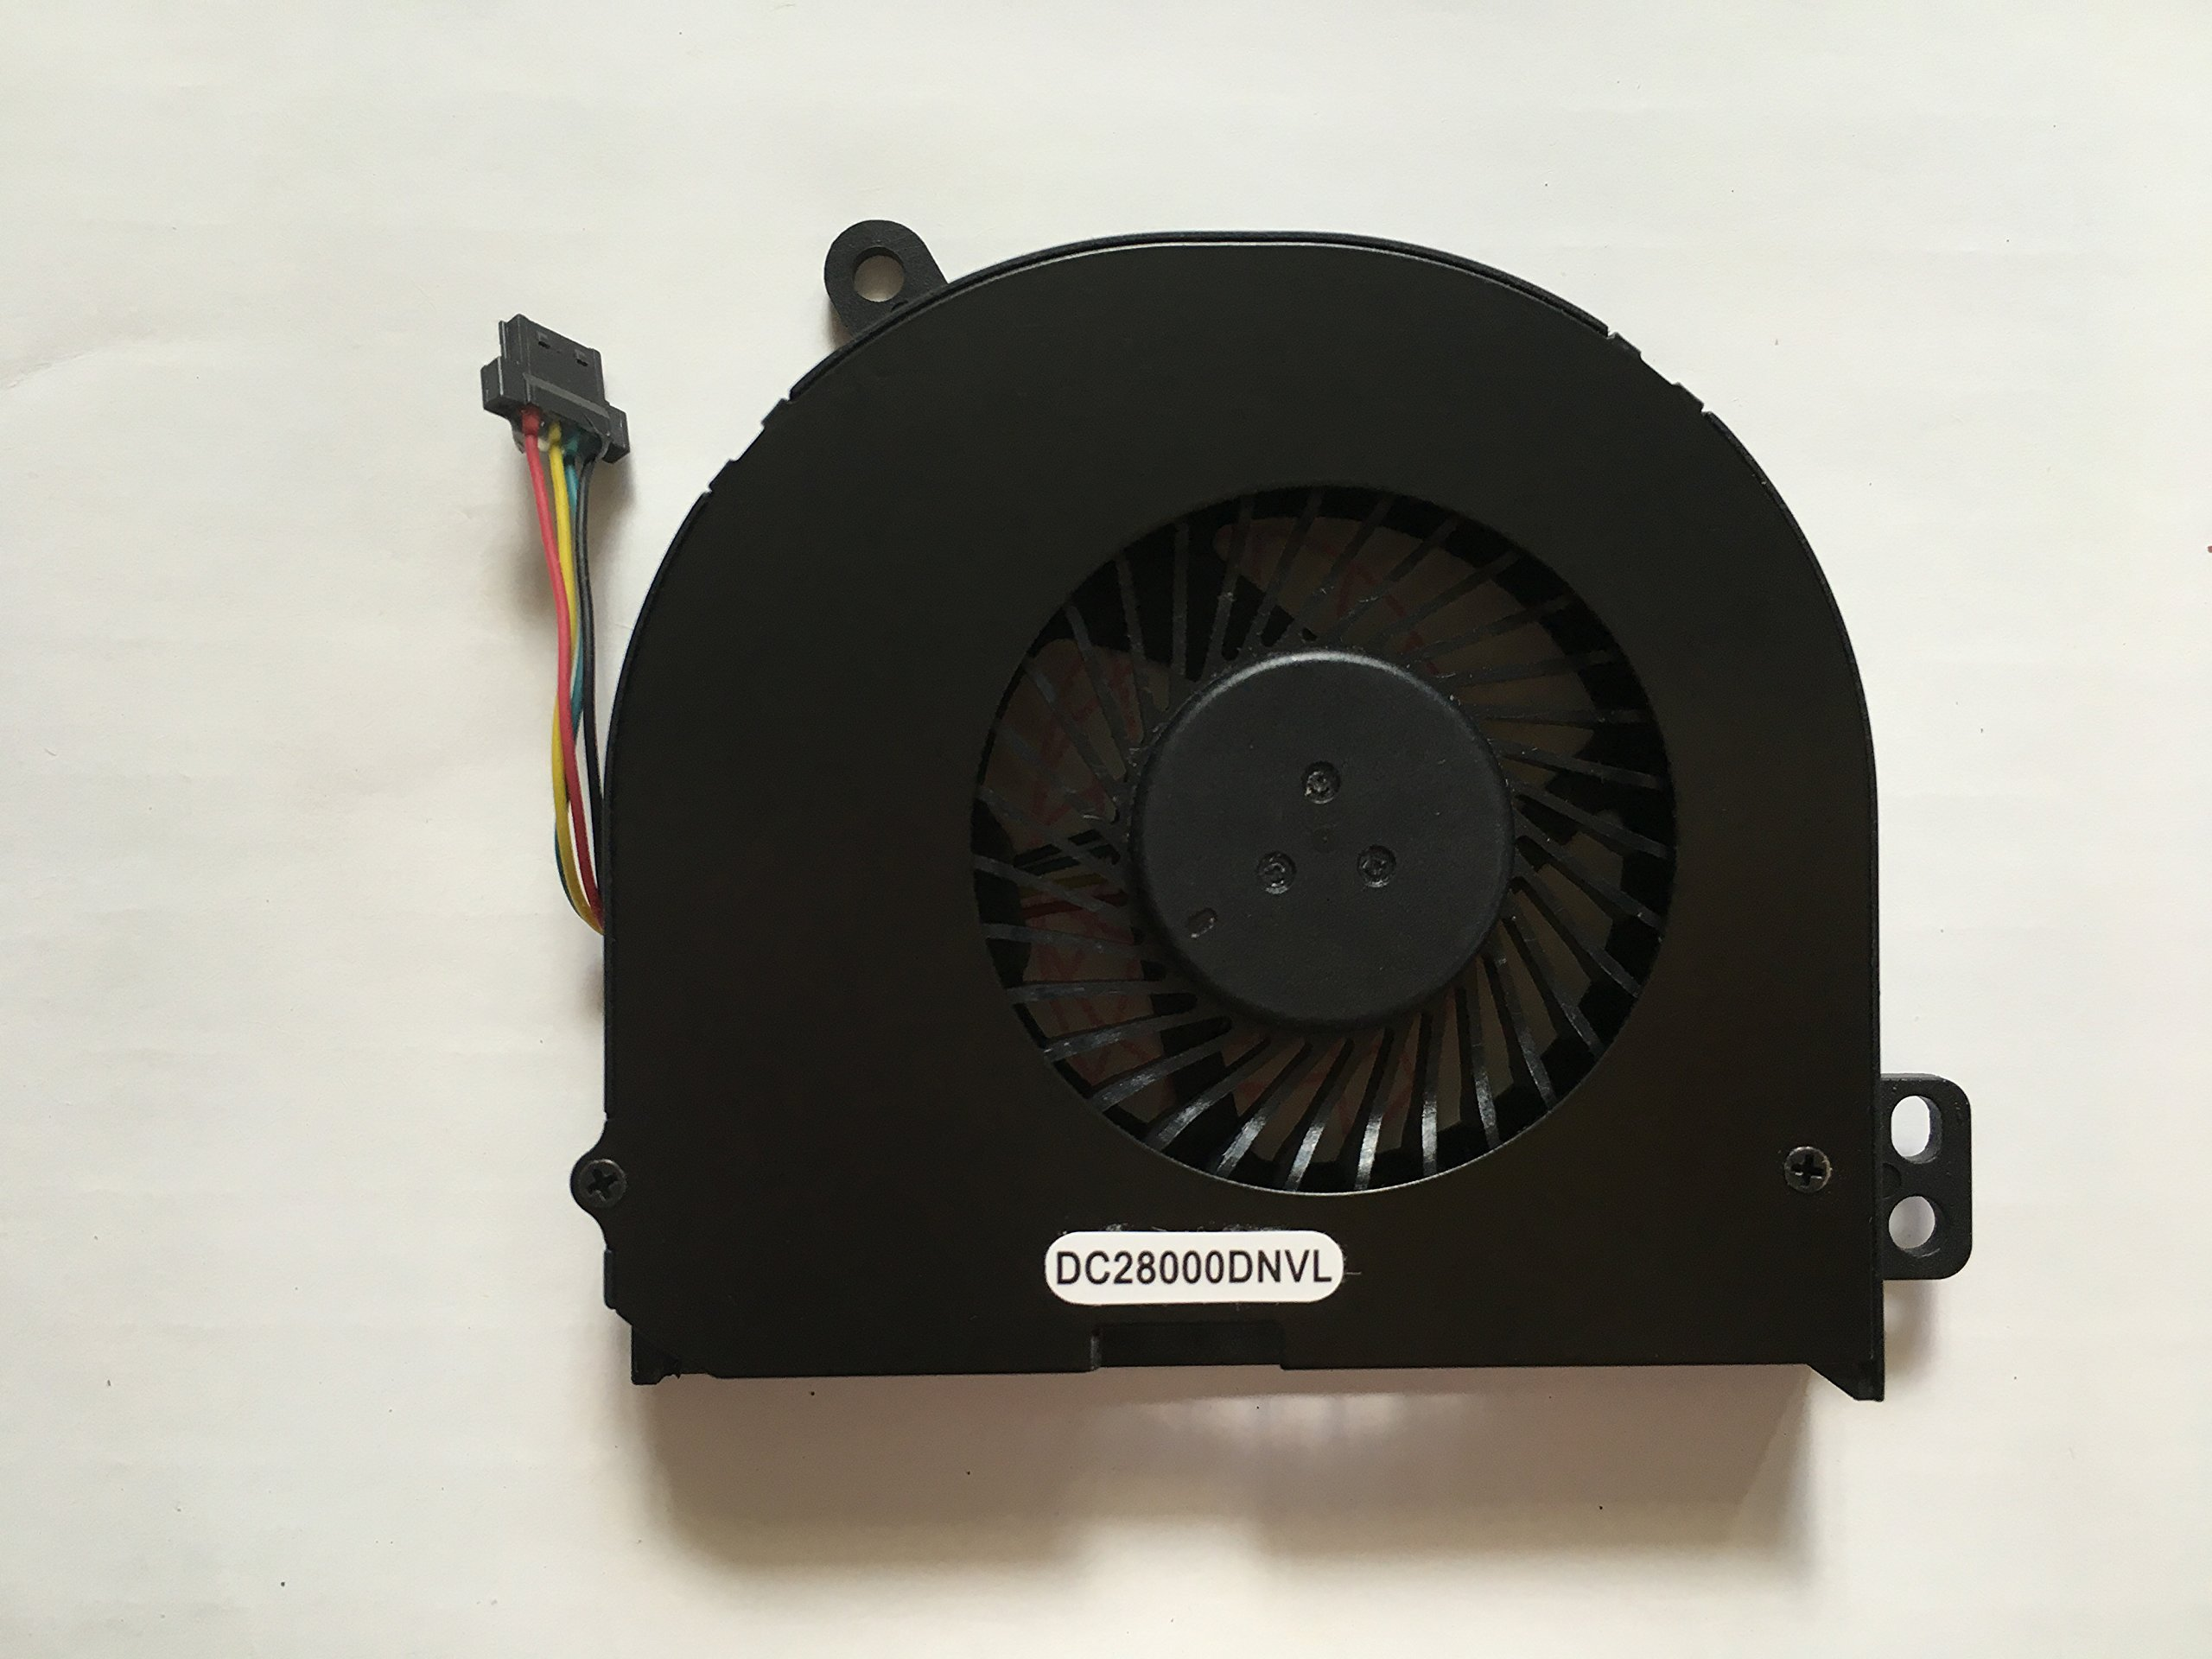 HK-part Replacement Fan for Dell Latitude E5440 E5540 Series Cpu Cooling Fan DP/N 087XFX CN-087XFX